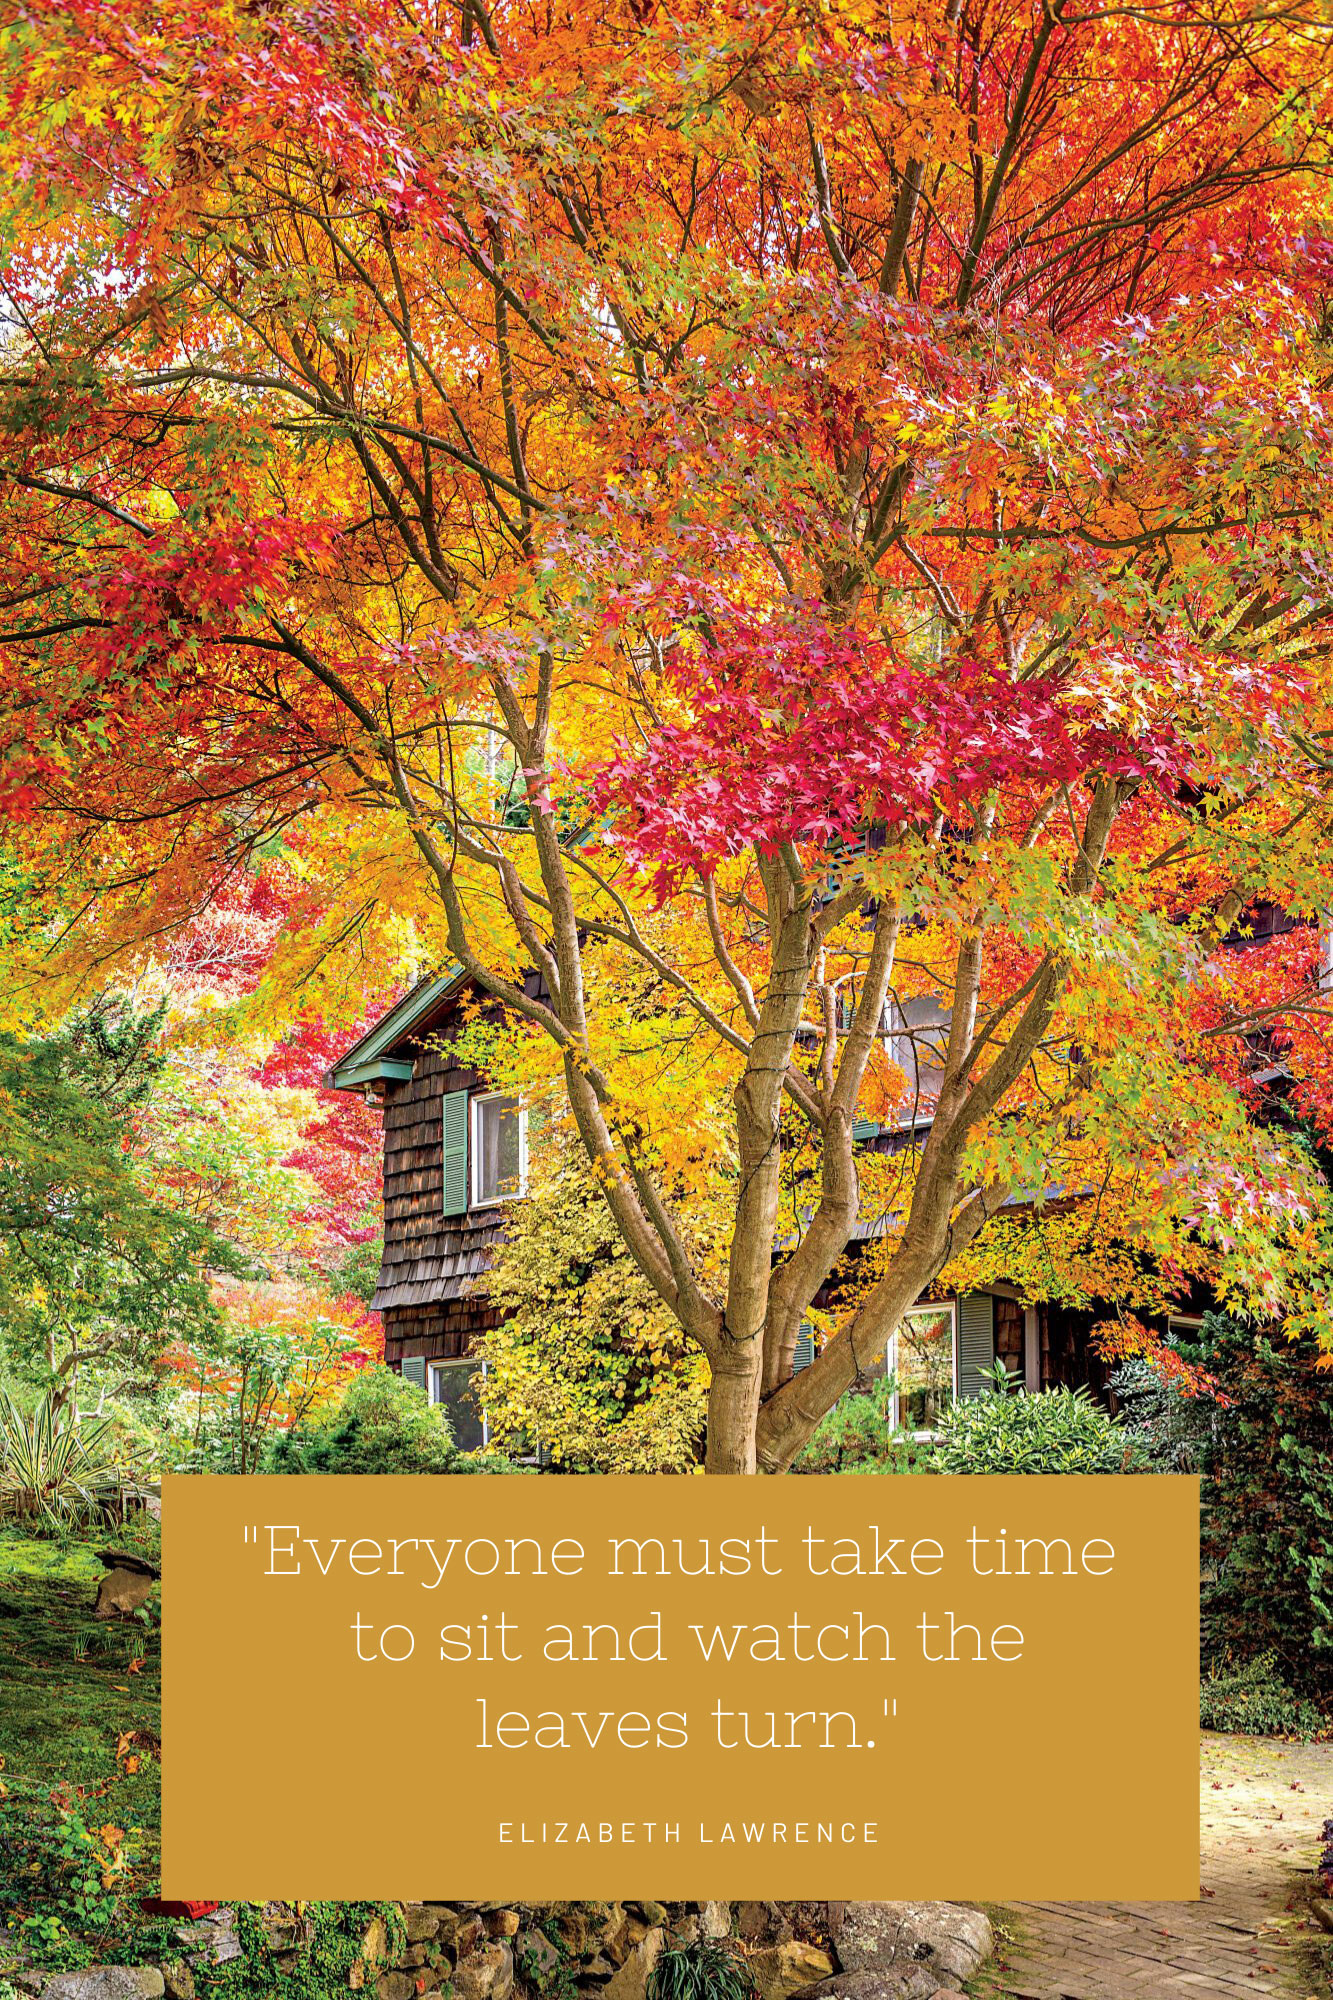 Gardening Quotes on Seasons